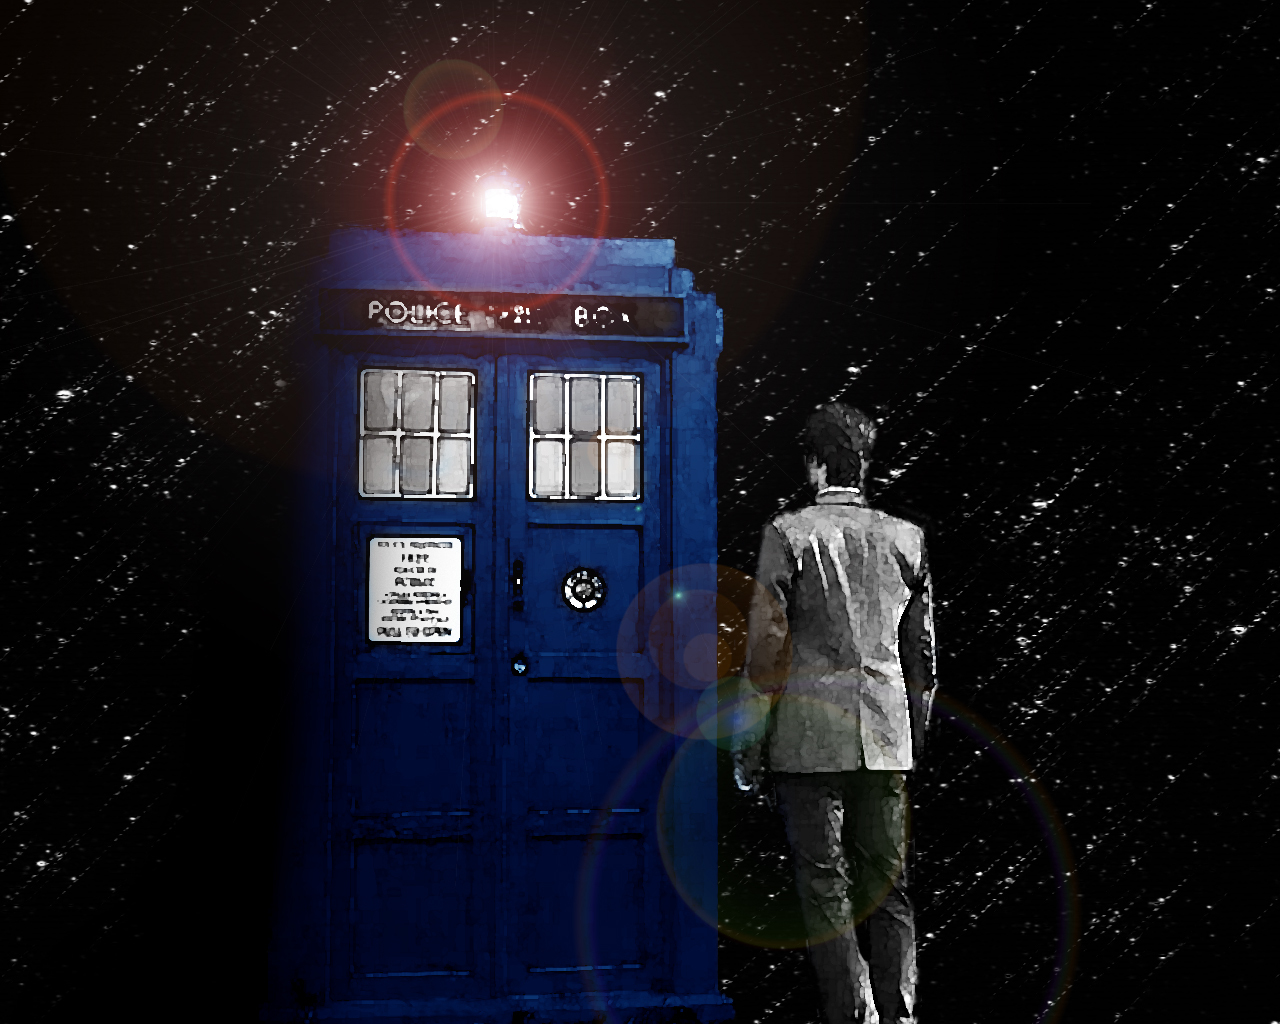 tardis eleventh doctor Doctor HD Wallpaper